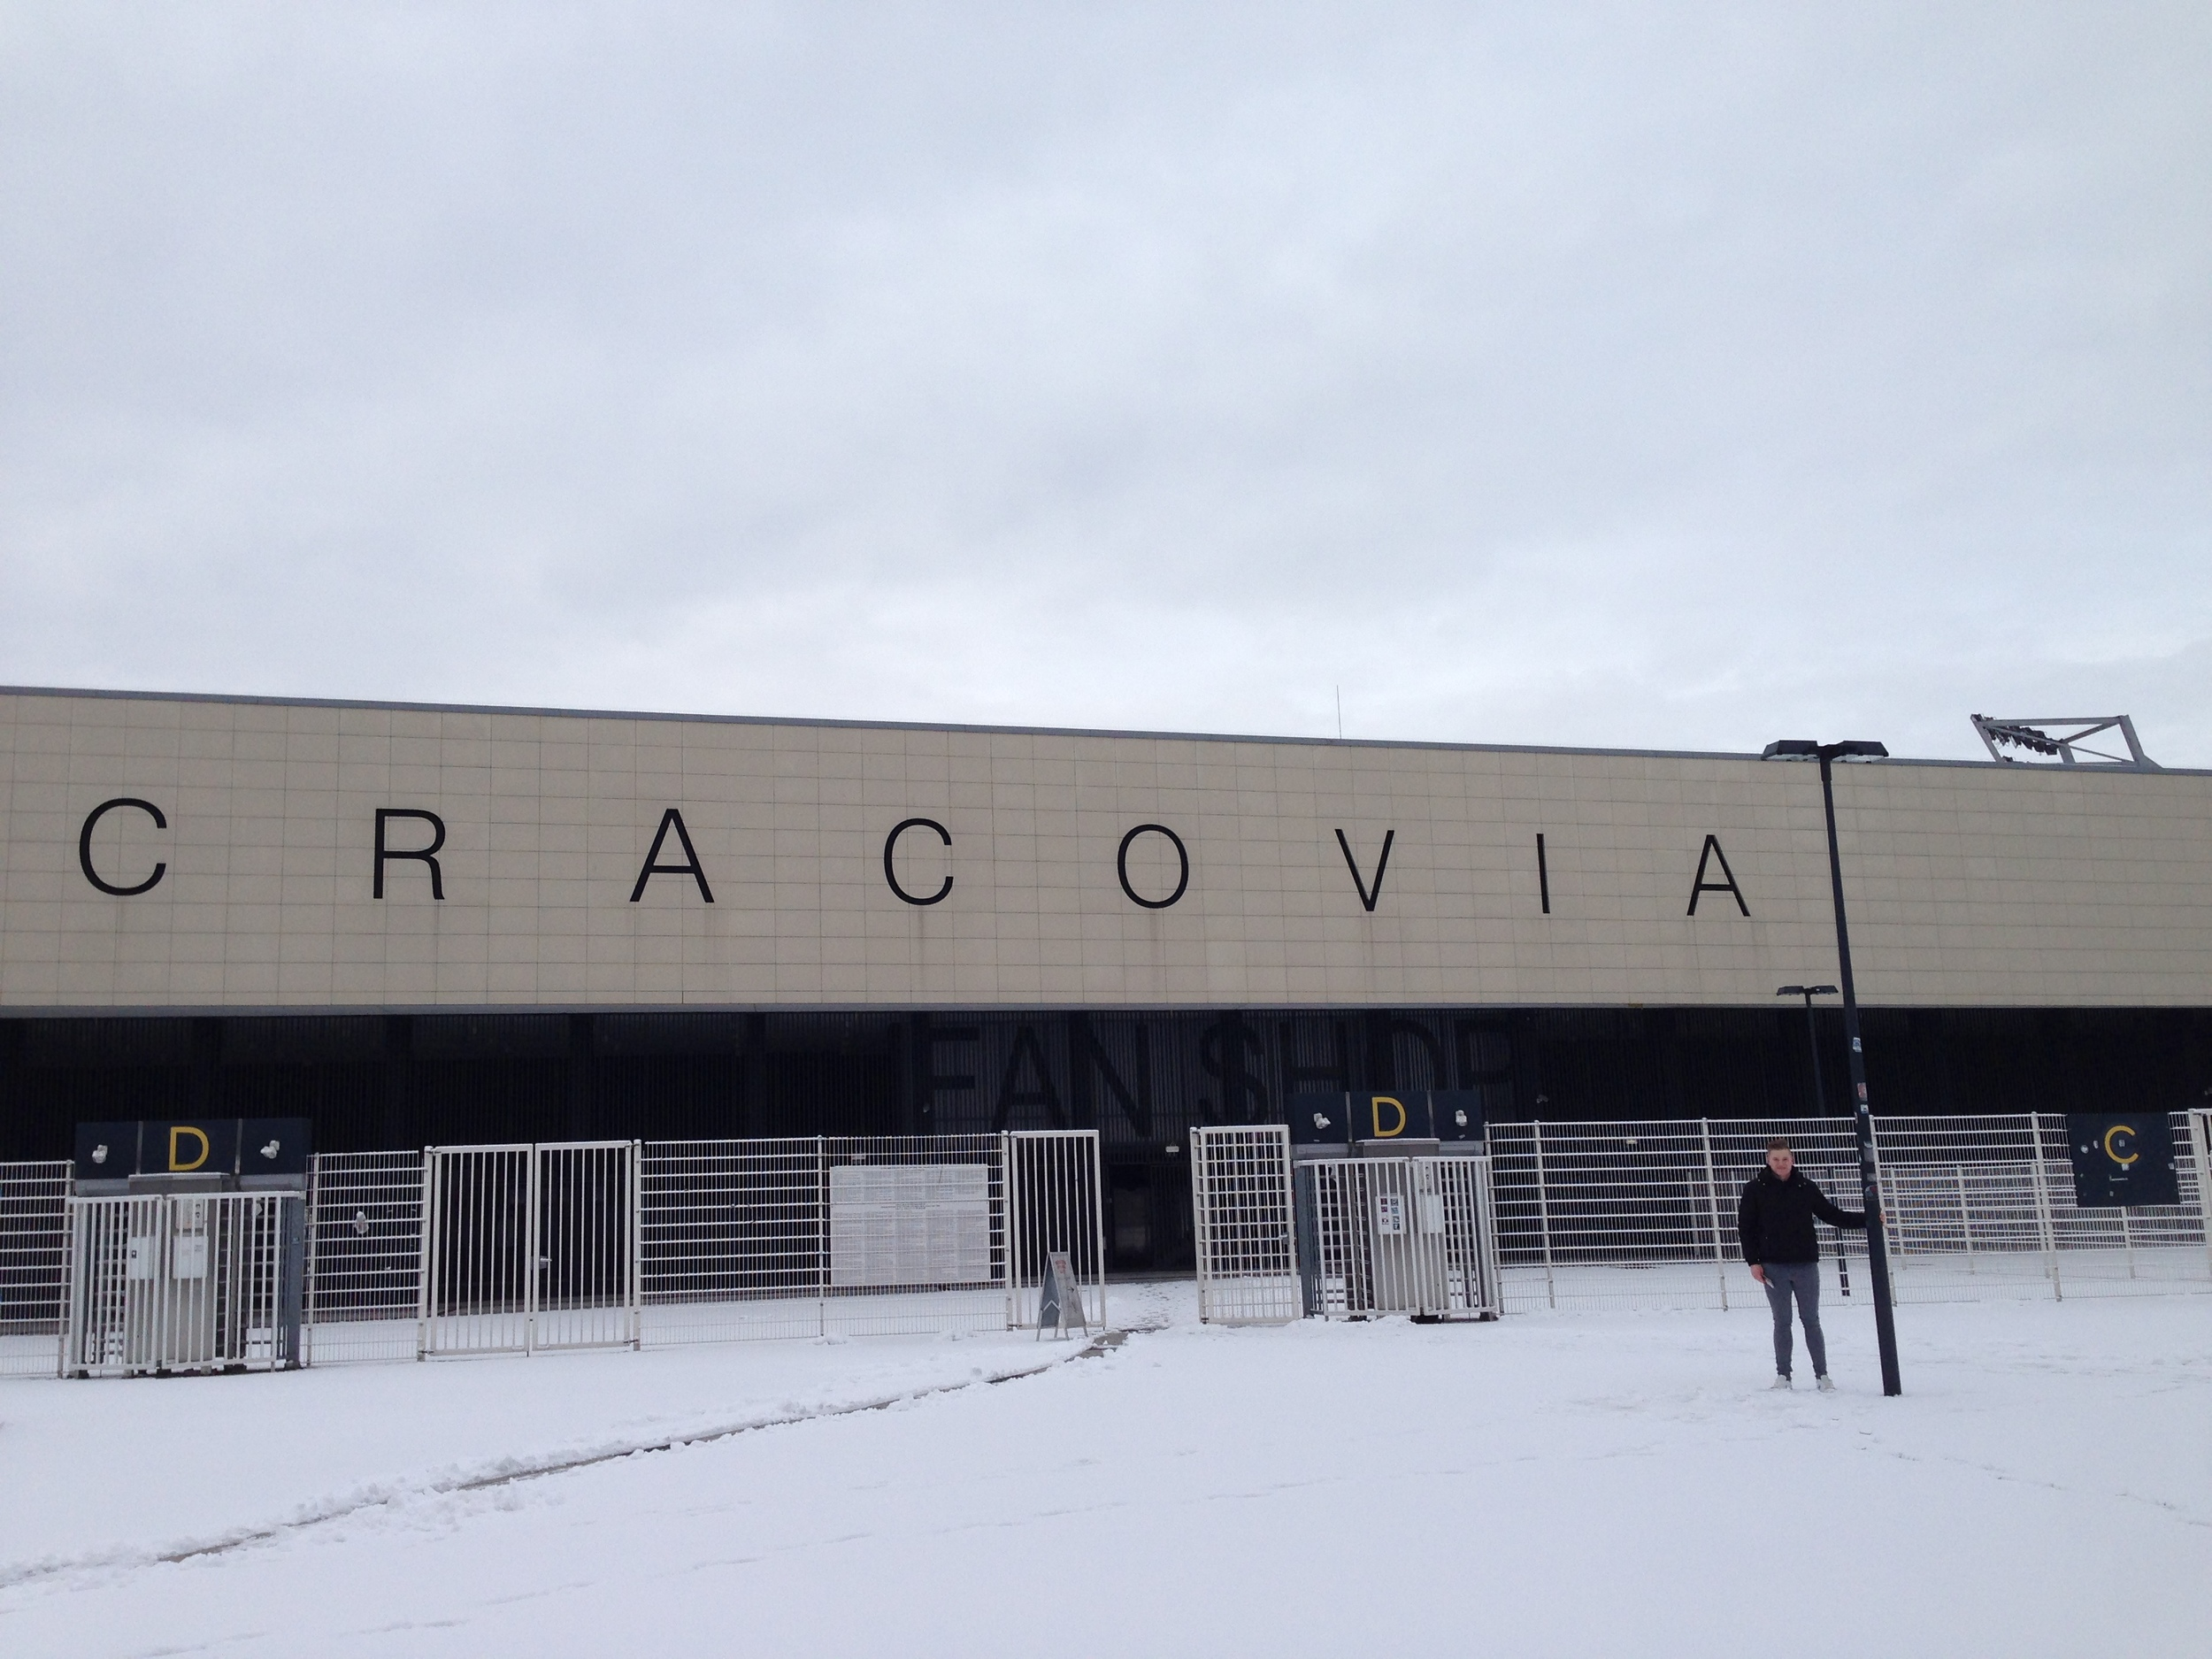 Outside KS Cracovia's ground, Józef Piłsudski Stadium. Cracovia have won the Polish championship five times, and are the oldest football team in Poland still in existence.